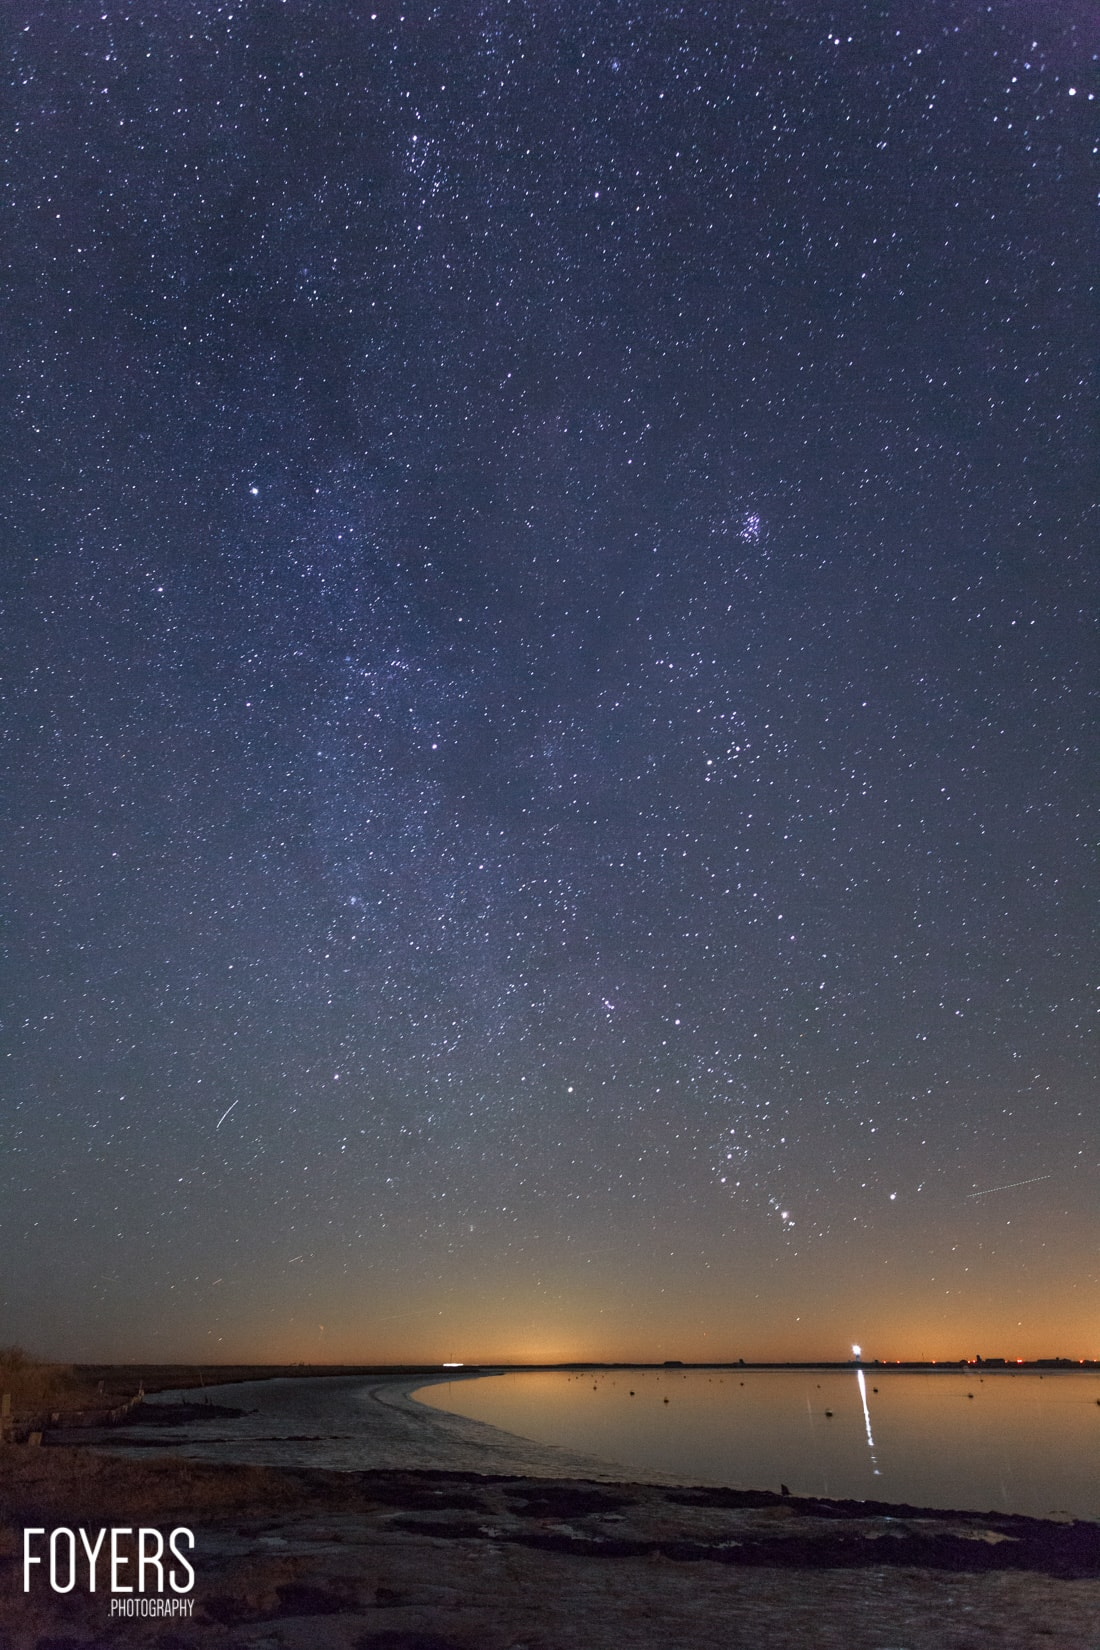 stars-orford-suffolk-0035-november-29-2016-copyright-foyers-photography